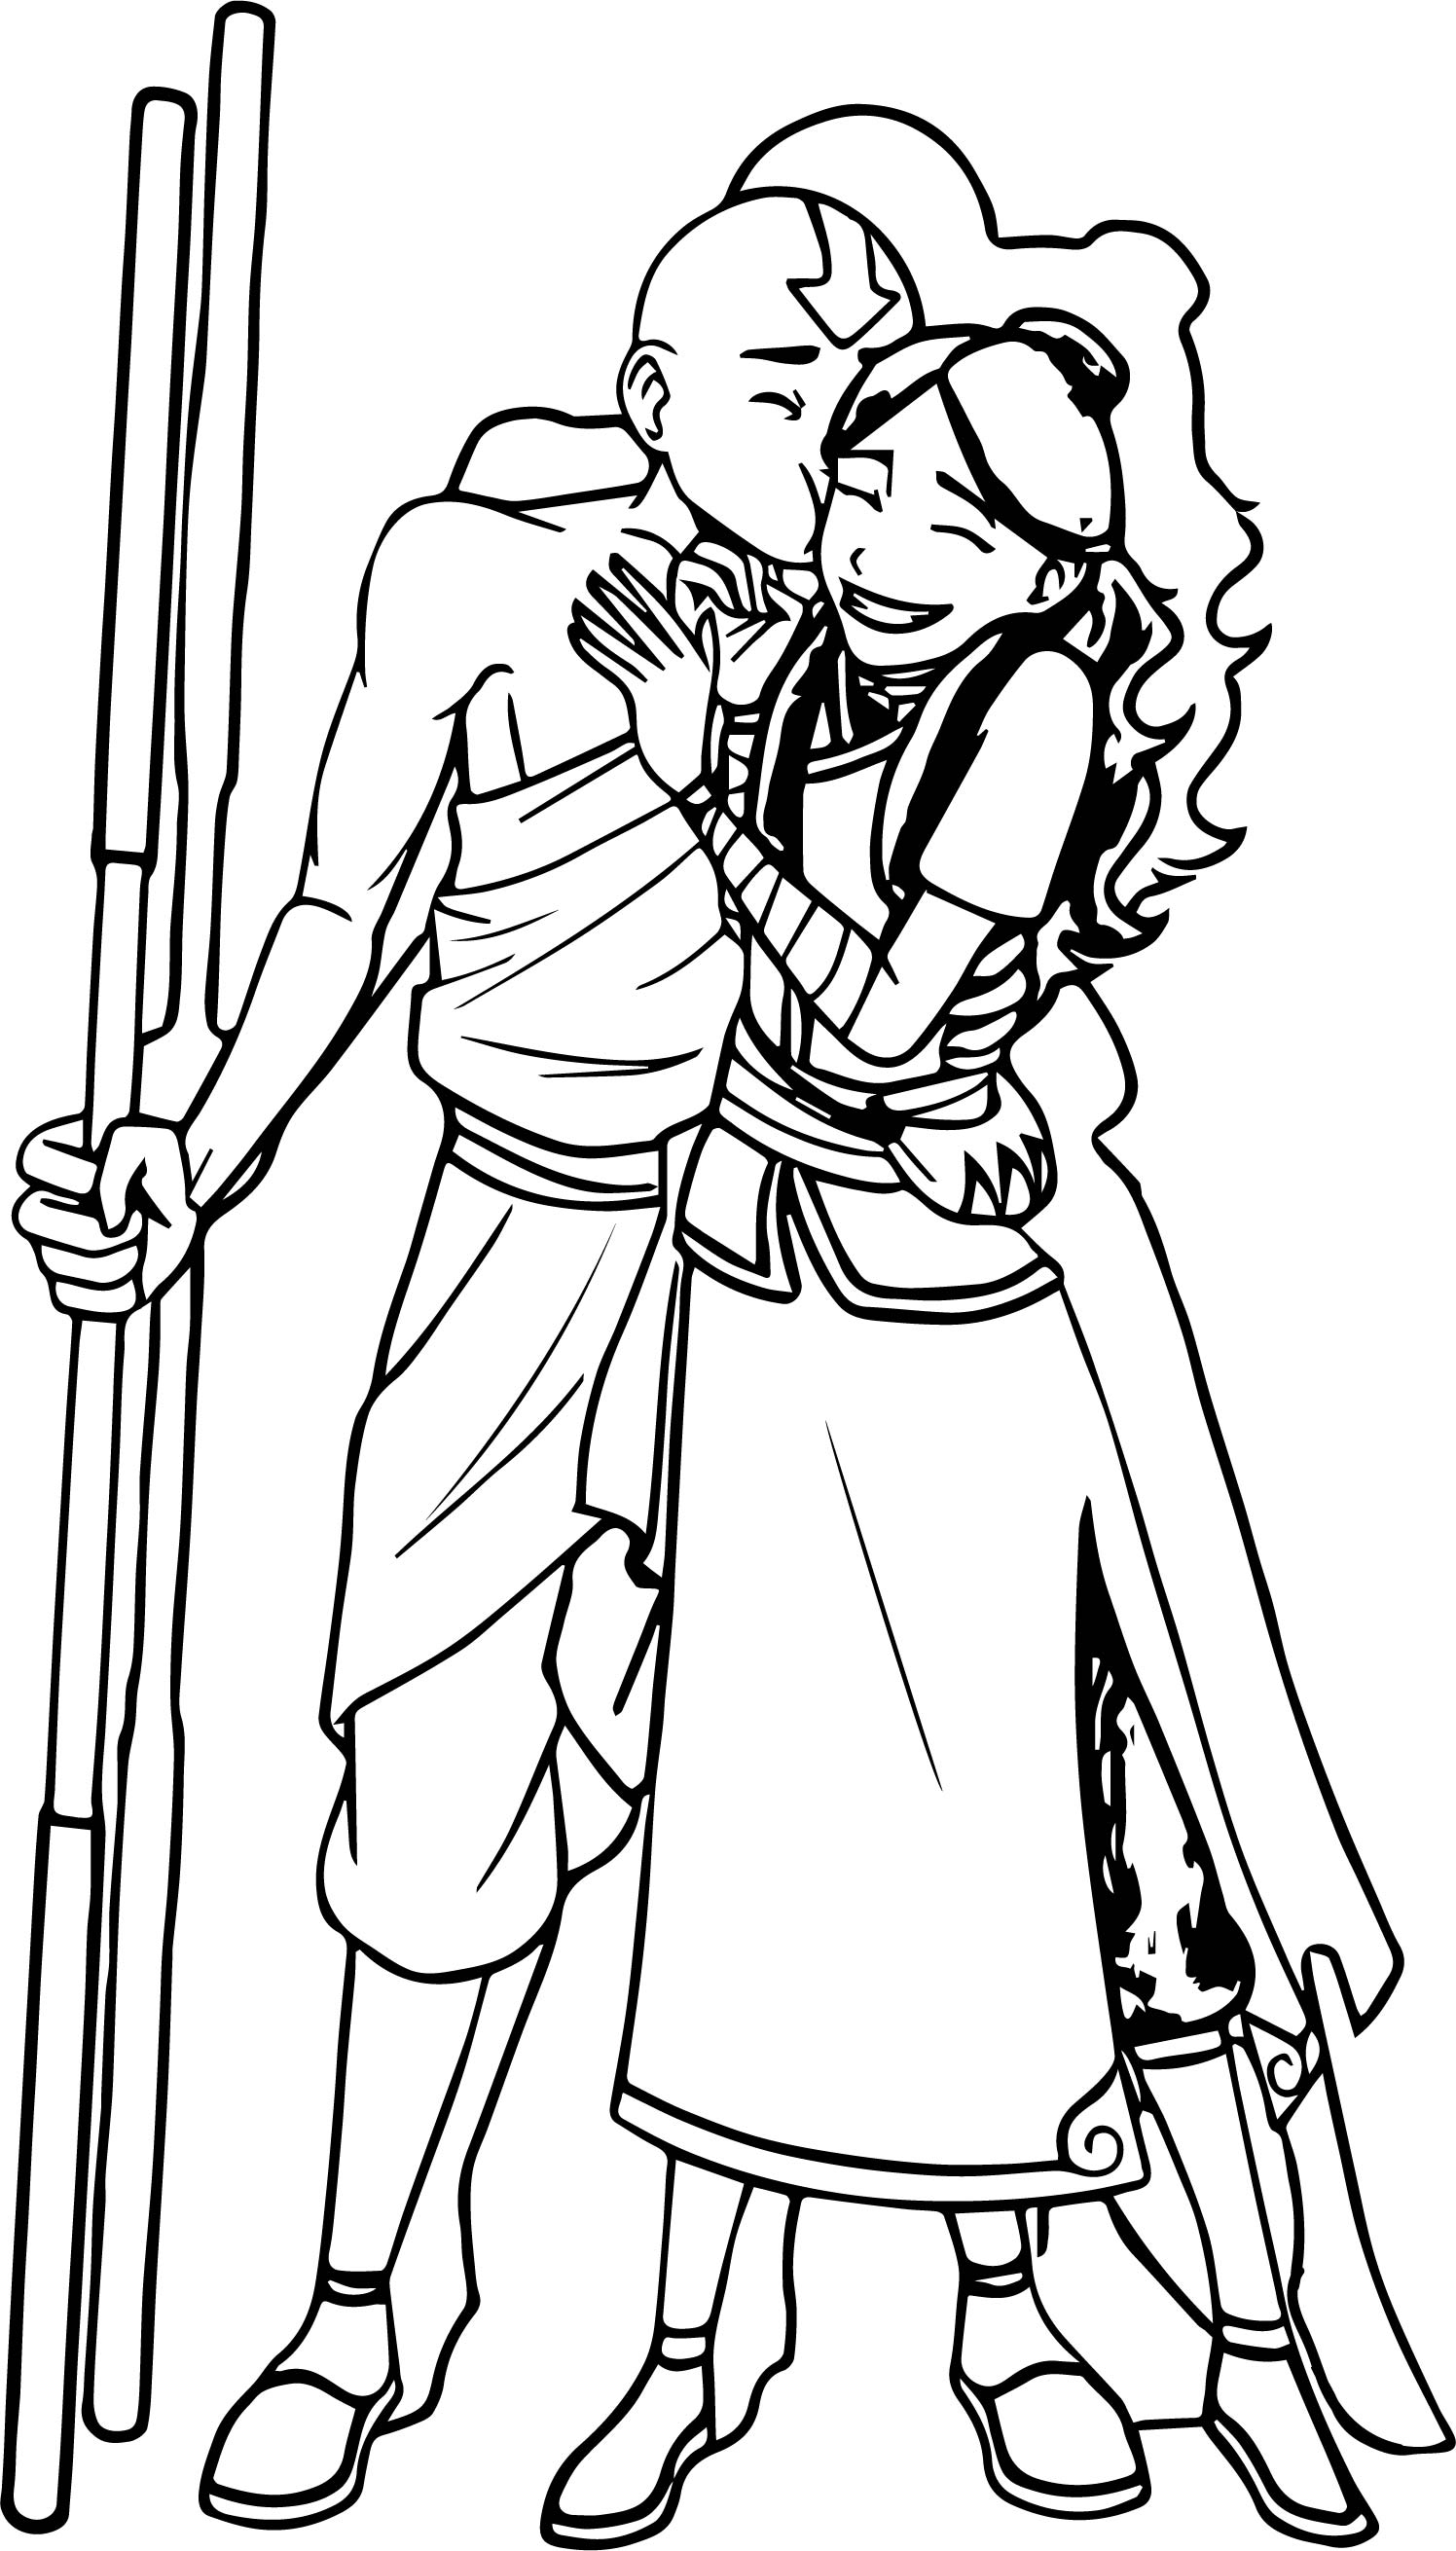 Aang And Katara Fro Cho Avatar Coloring Page